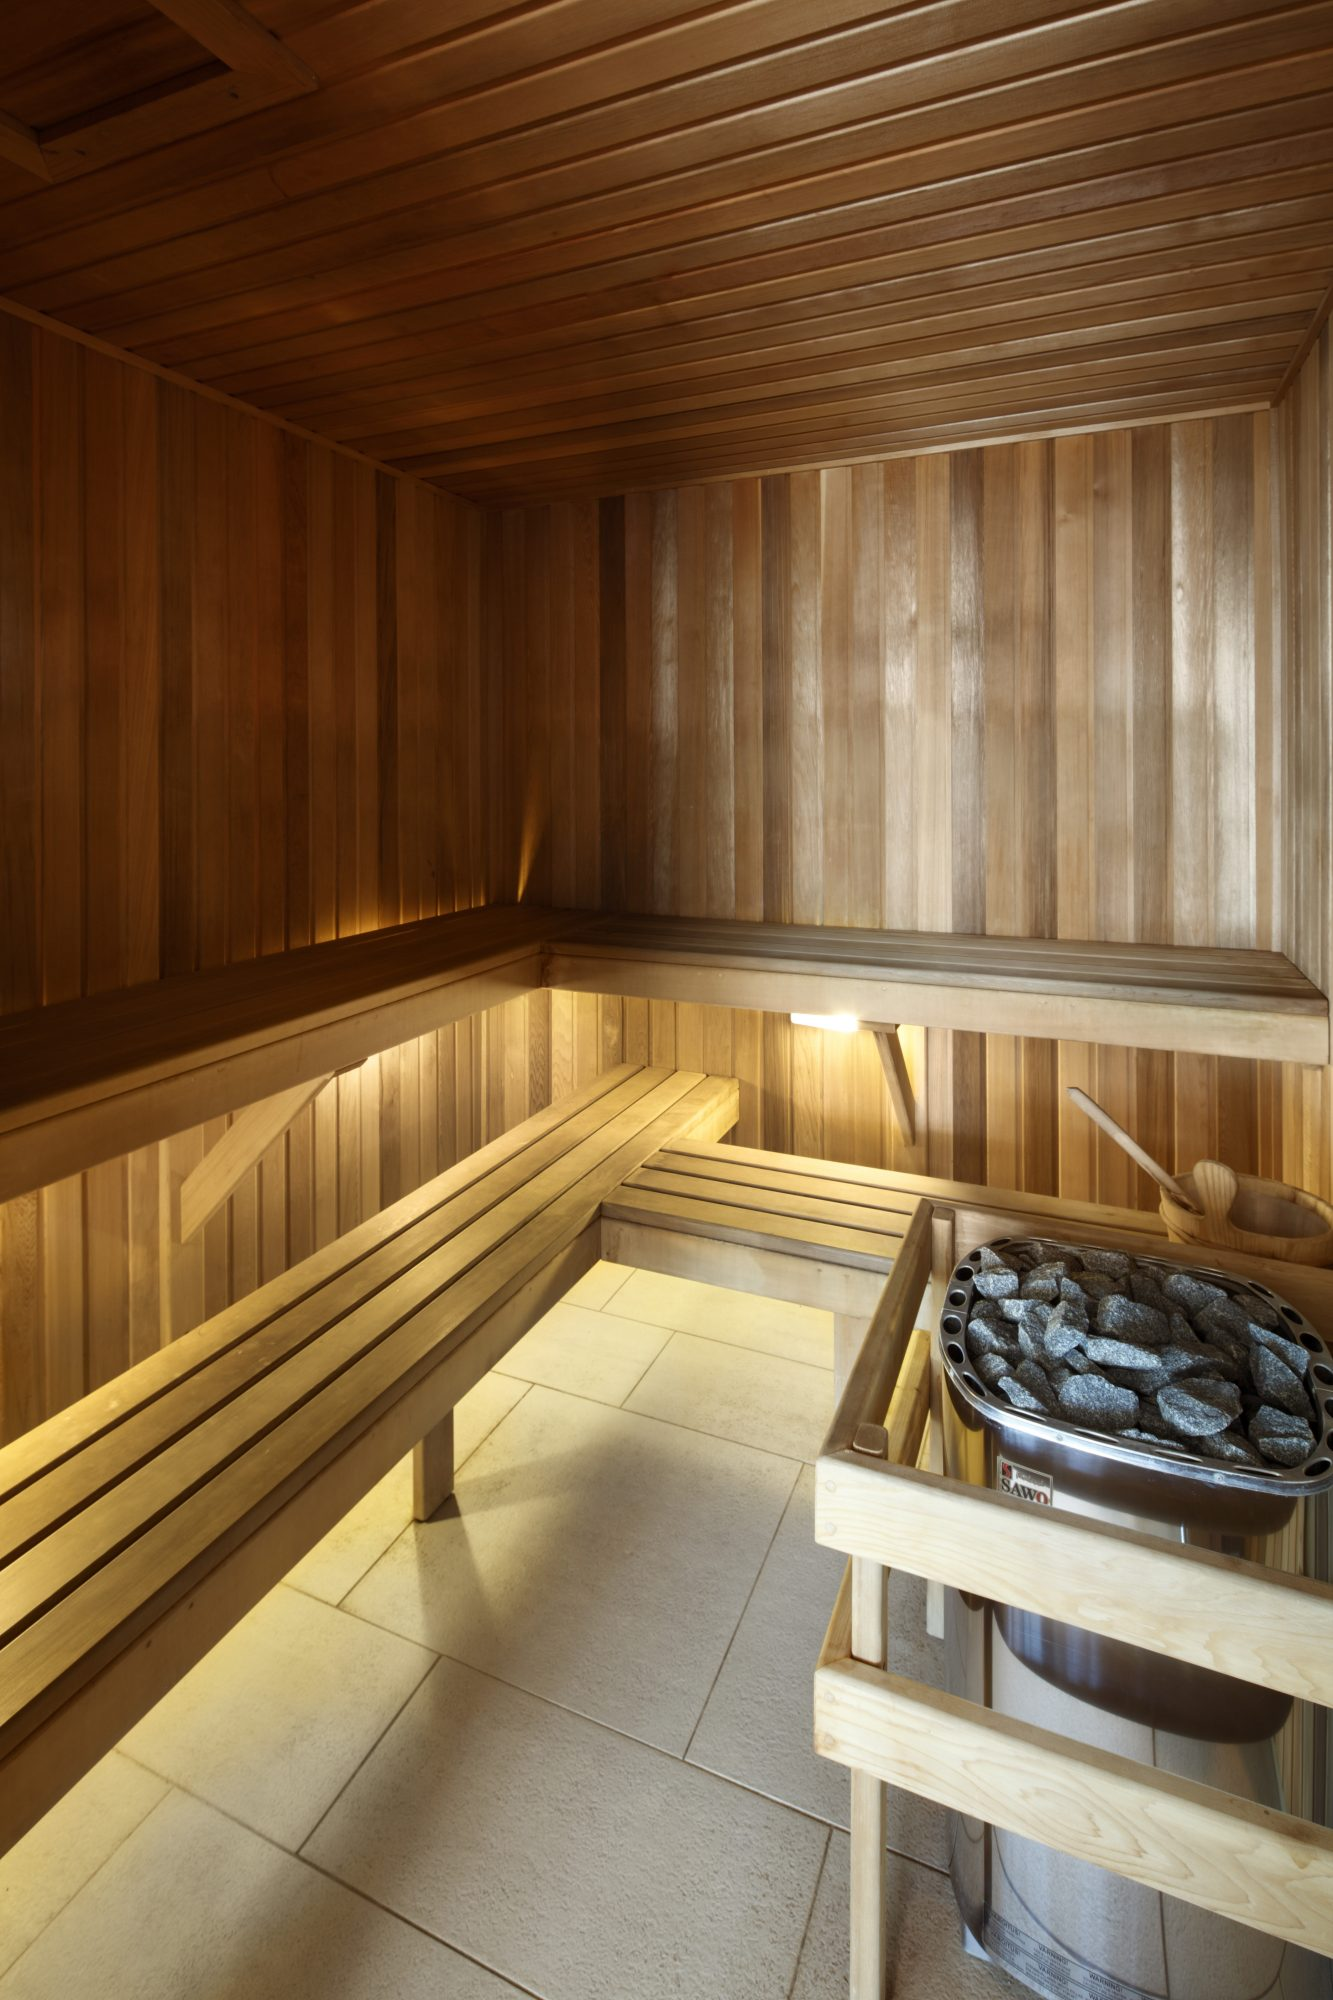 Treat and protect your sauna with Sikkens timber stains